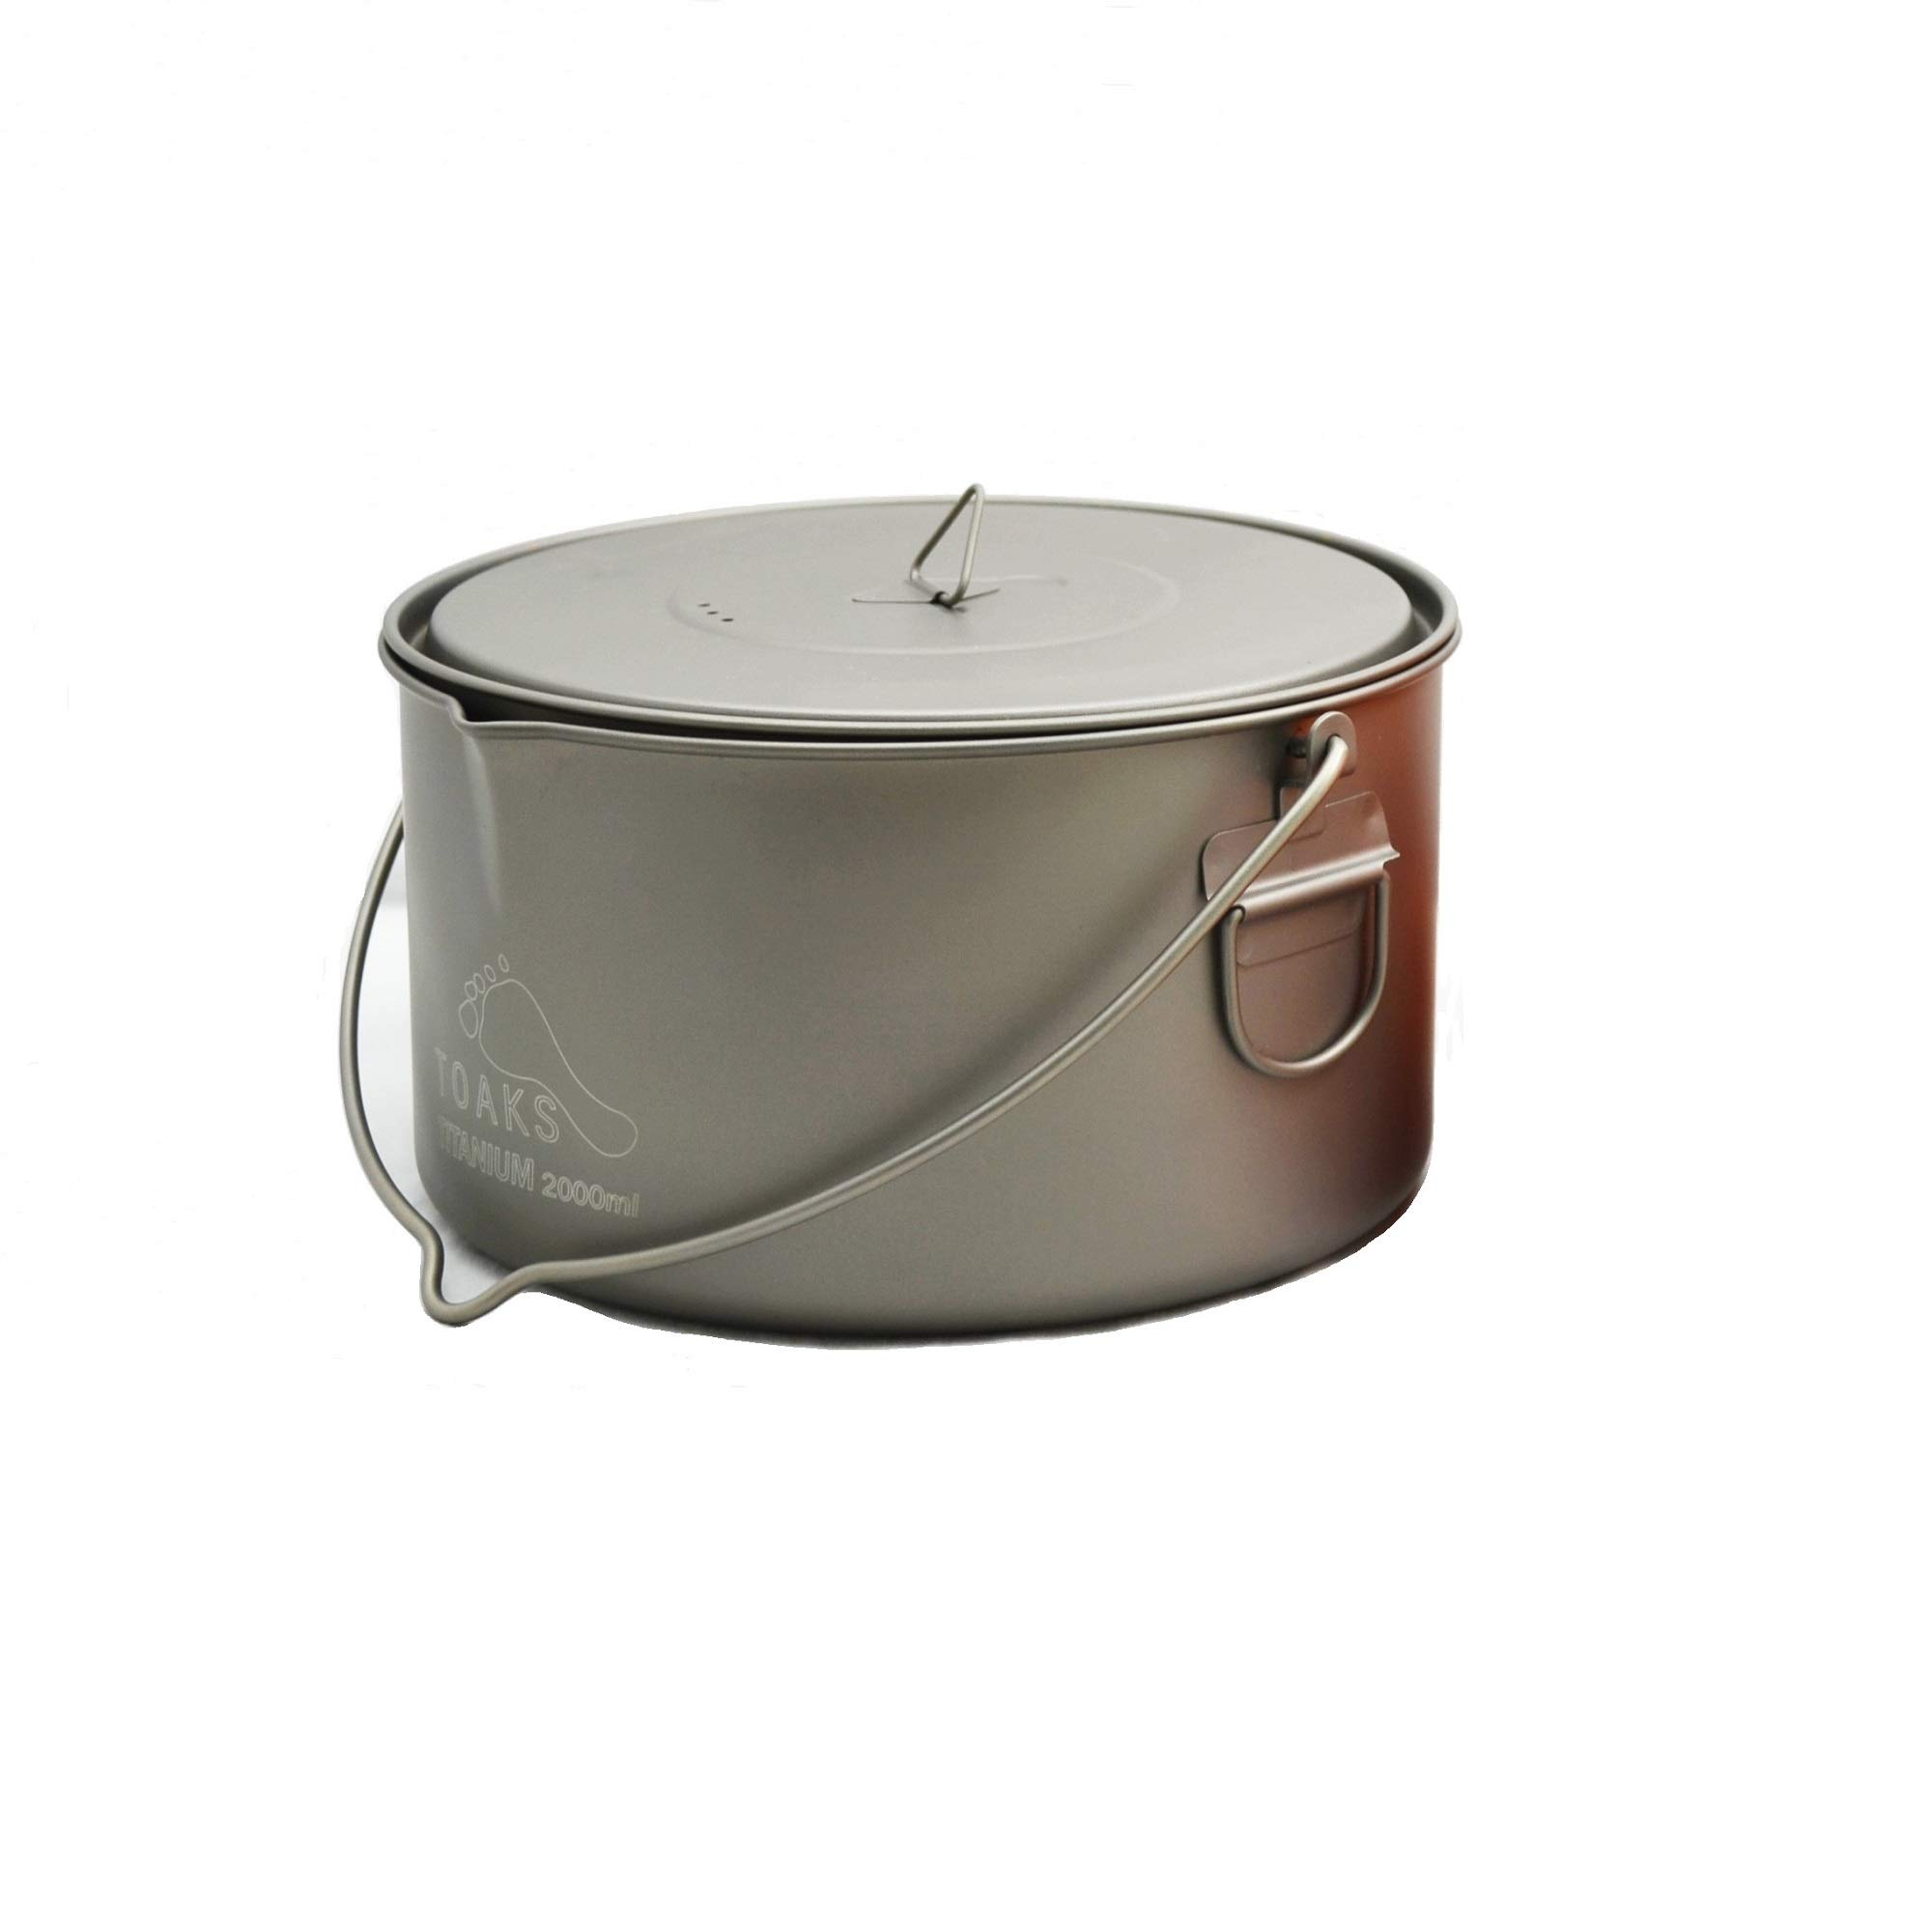 TOAKS Titanium 2000ml Pot with Bail Handle by TOAKS